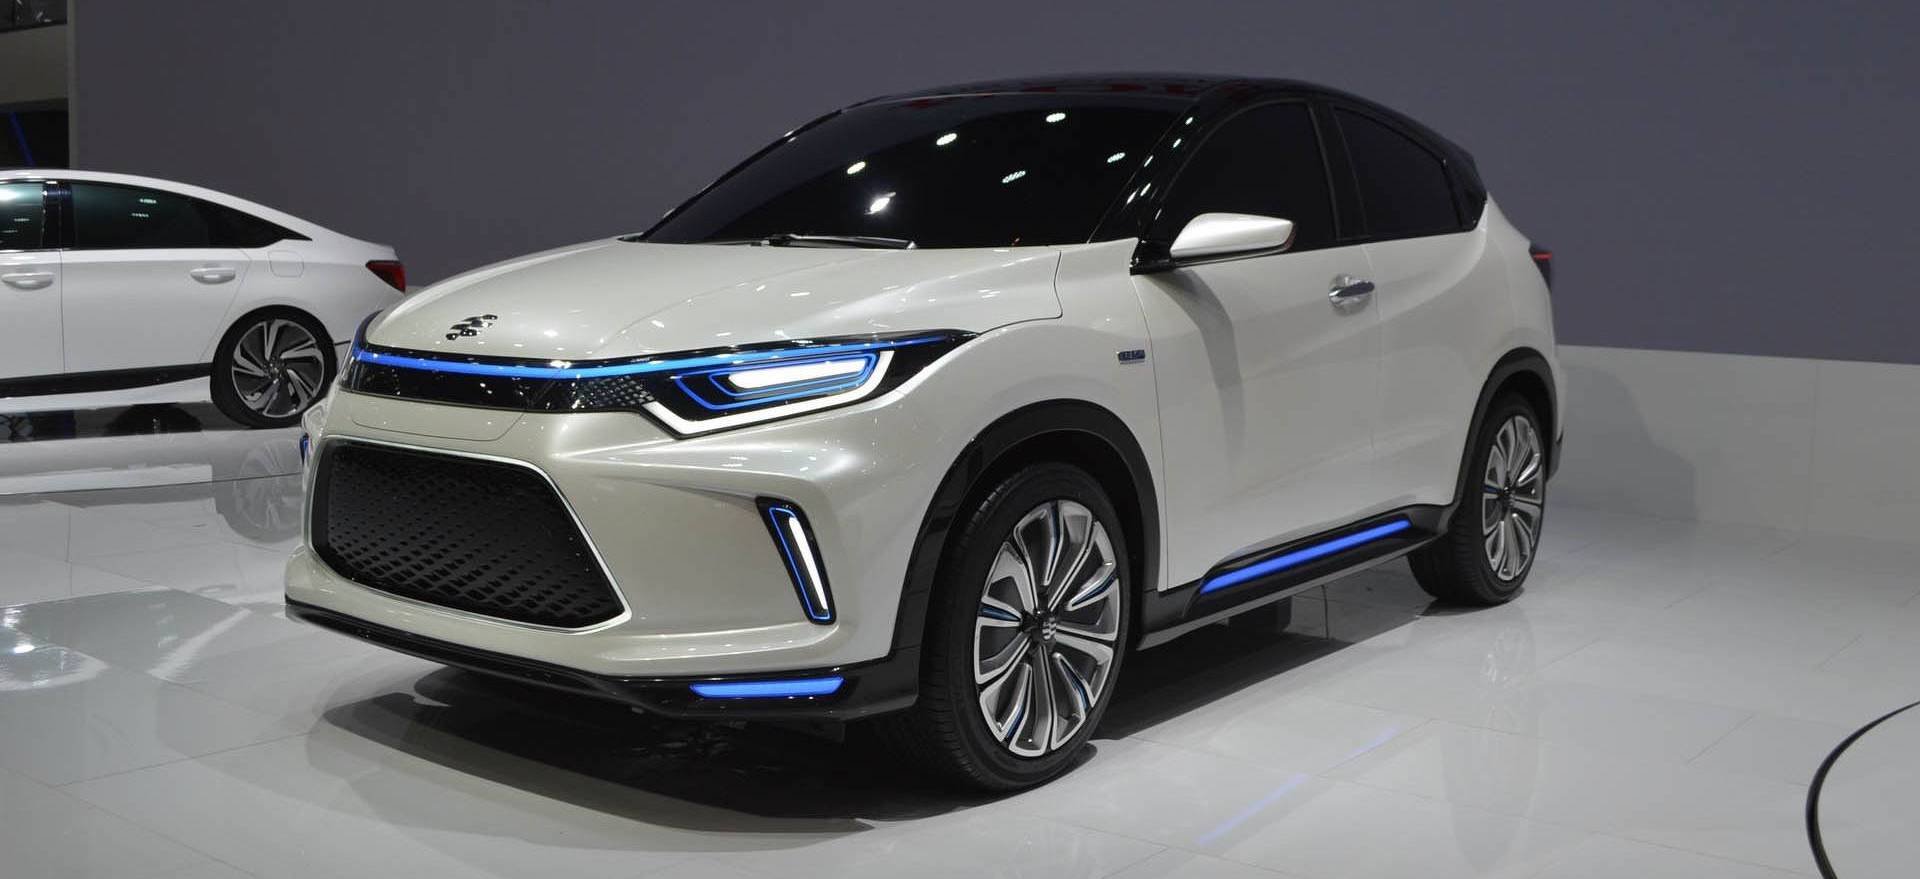 Honda Reveals Electric CUV With 53.6 kWh Battery Based On HR-V